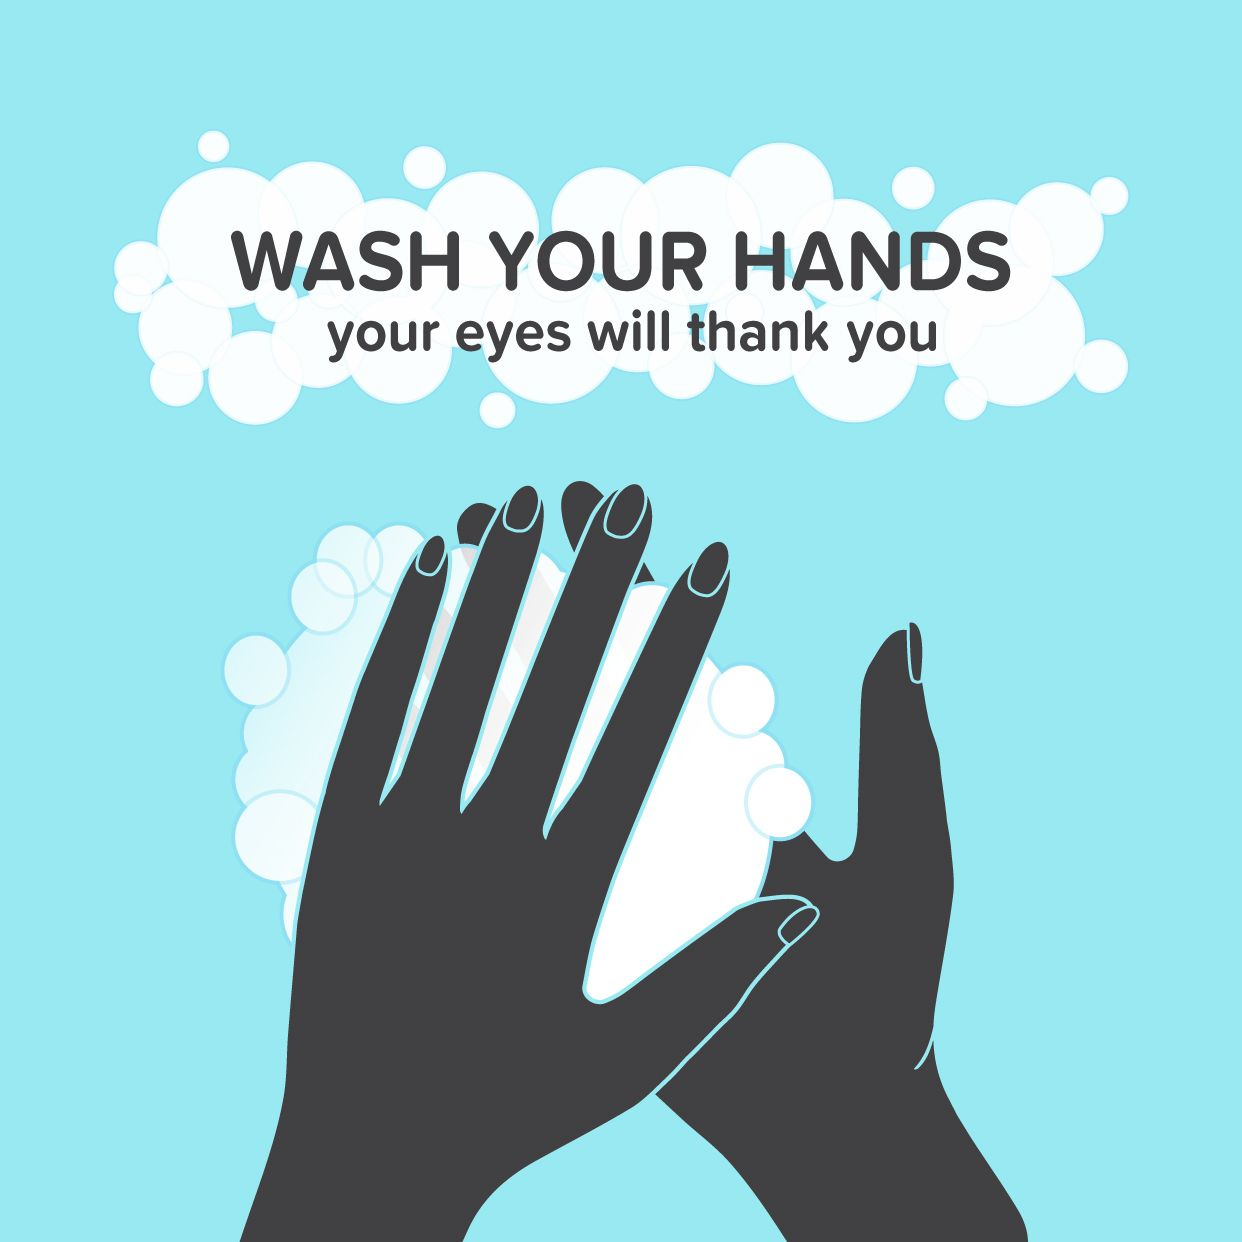 REMEMBER TO WASH YOUR HANDS before touching your eyes or